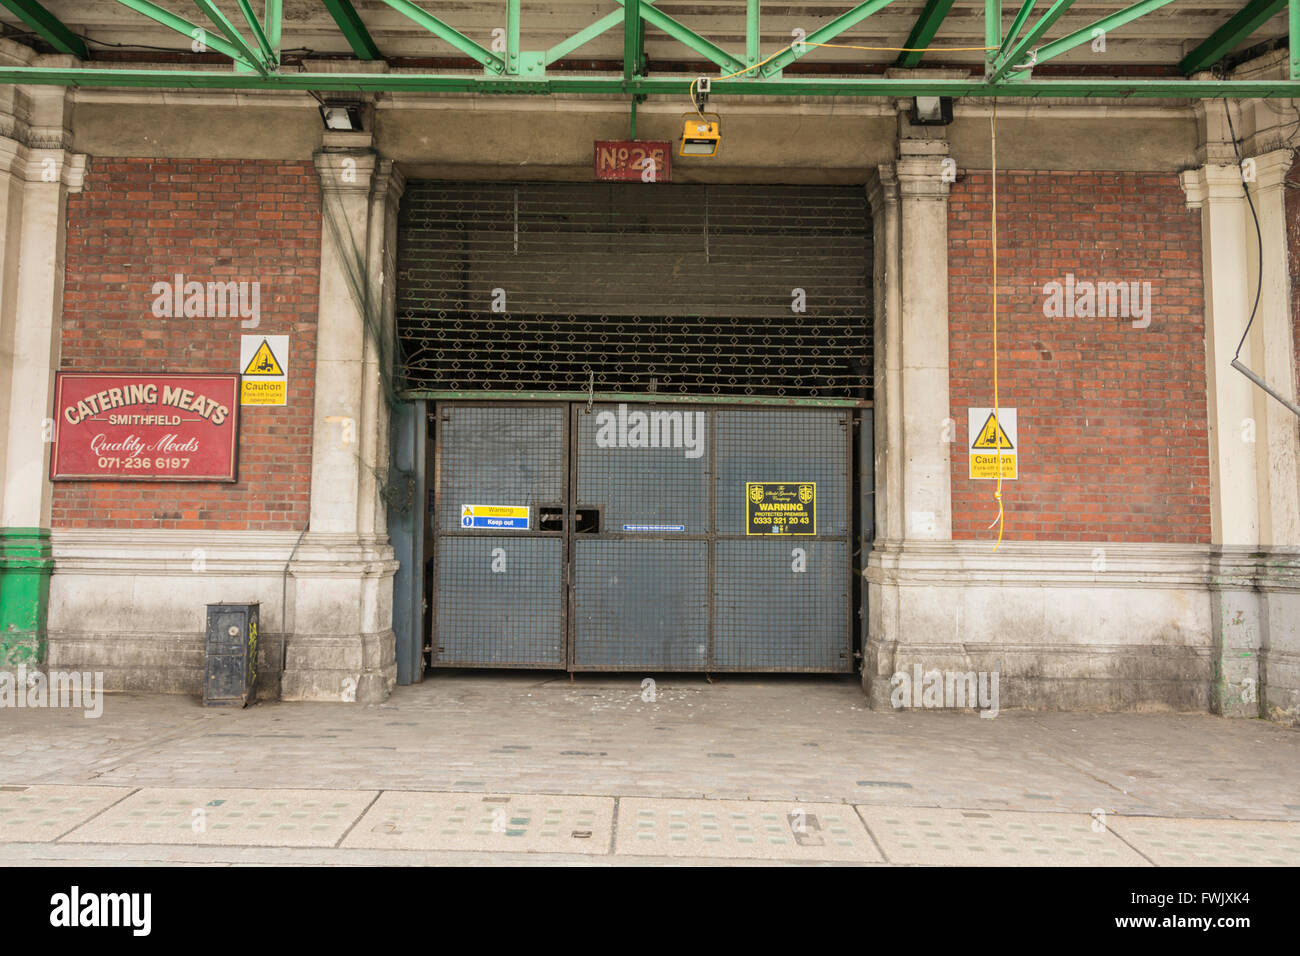 Catering Meats - the remnants of Smithfield Meat Market in Central London, UK Stock Photo